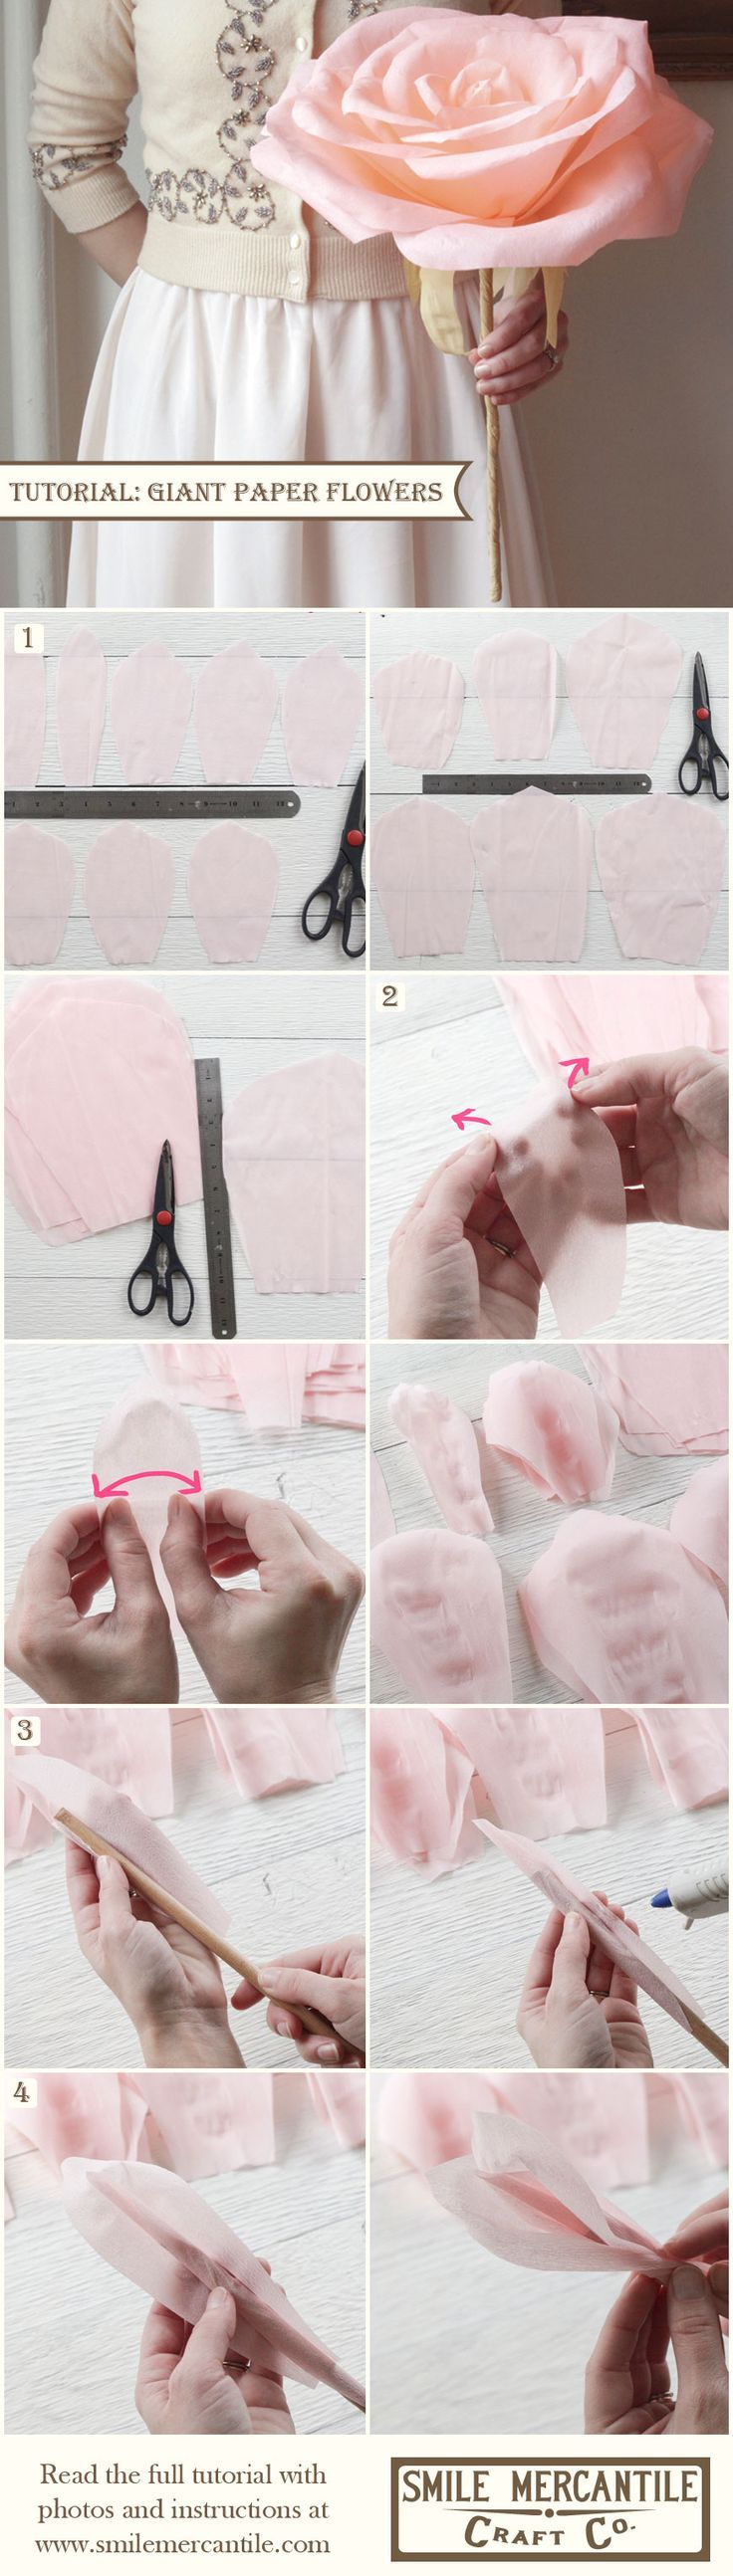 Tutorial: Make Giant Paper Flowers! so gorgeous ♥